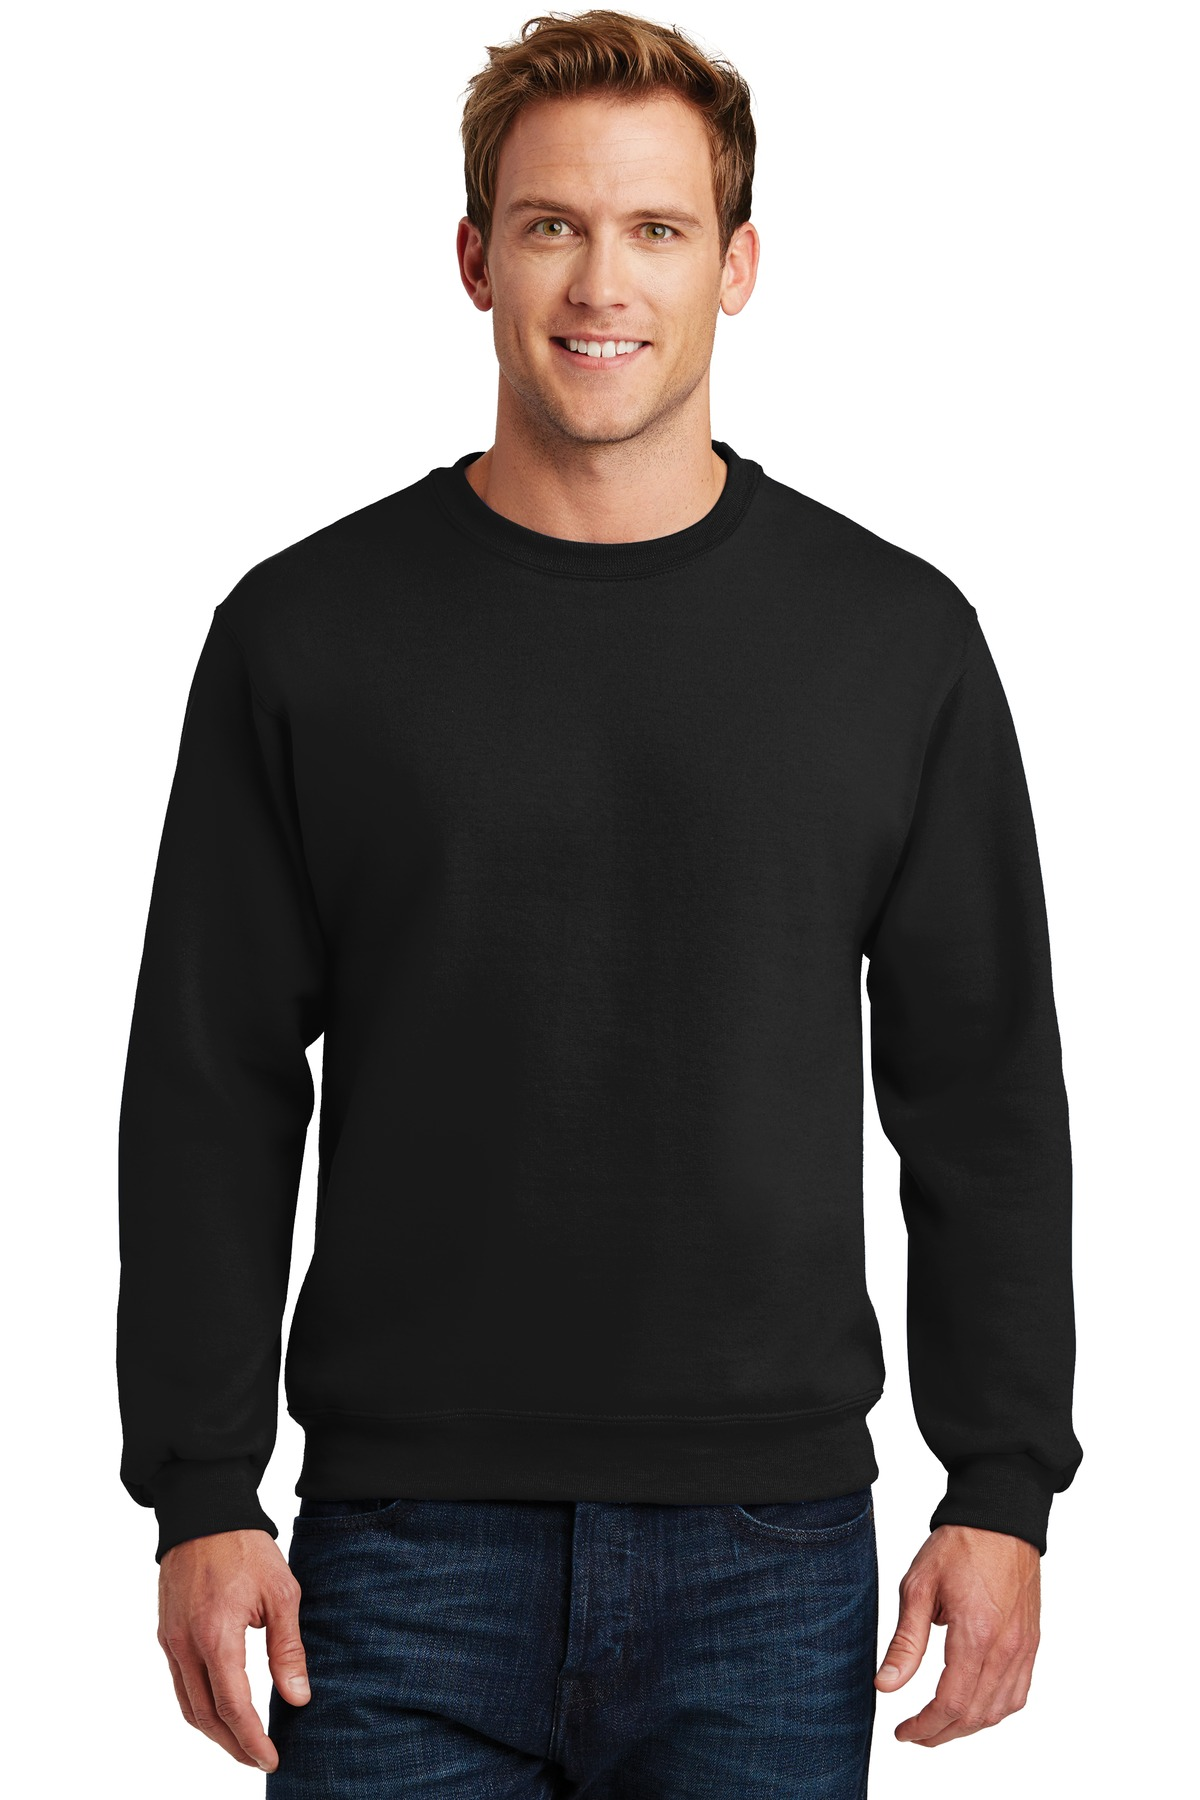 JERZEES SUPER SWEATS NuBlend - Crewneck Sweatshirt.  4662M